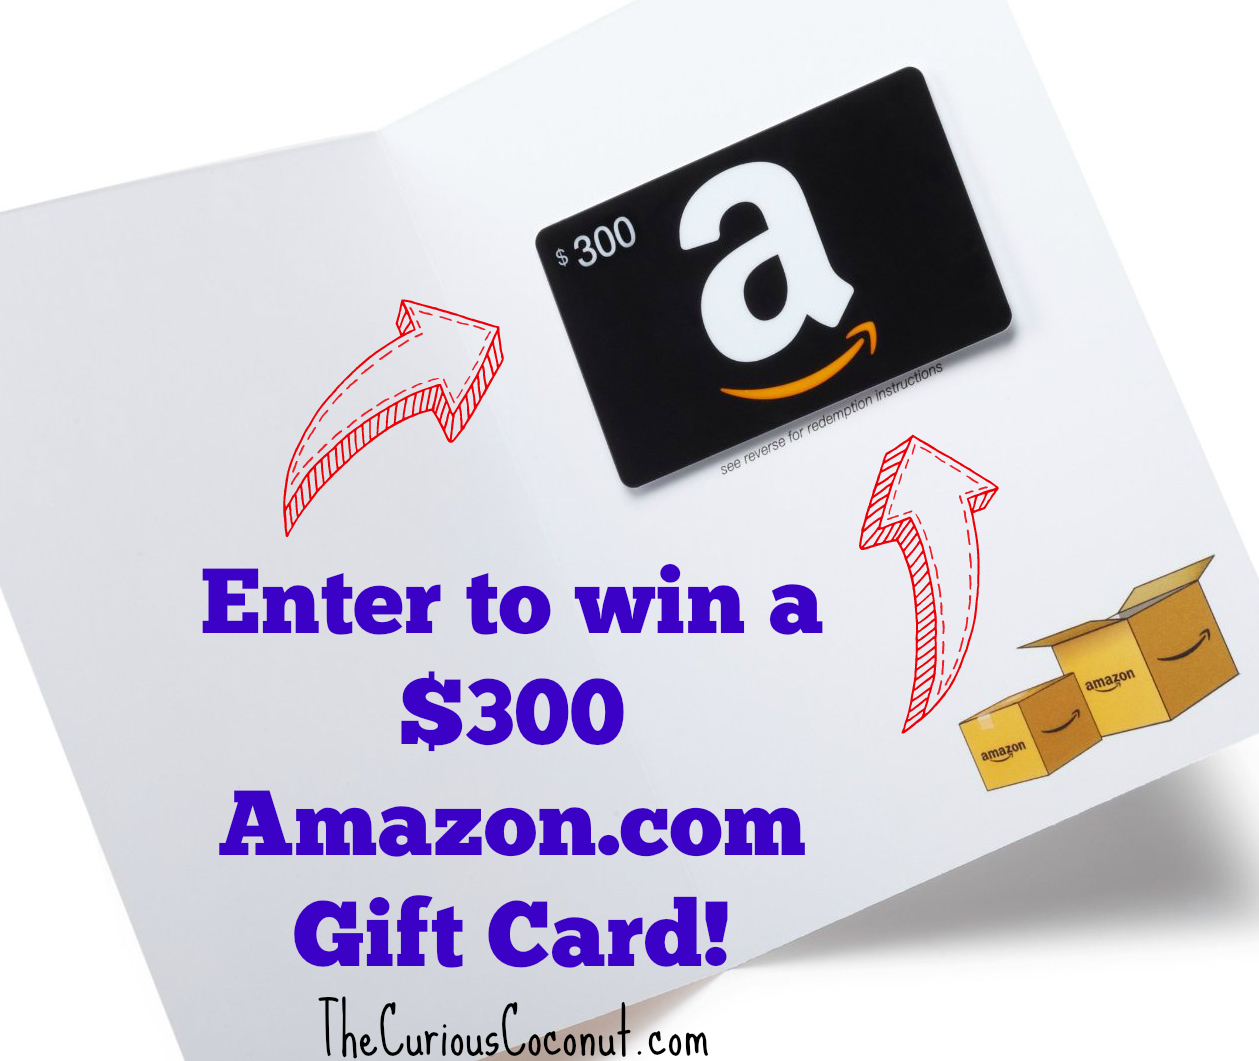 June Giveaway: $300 Amazon.com Gift Card!